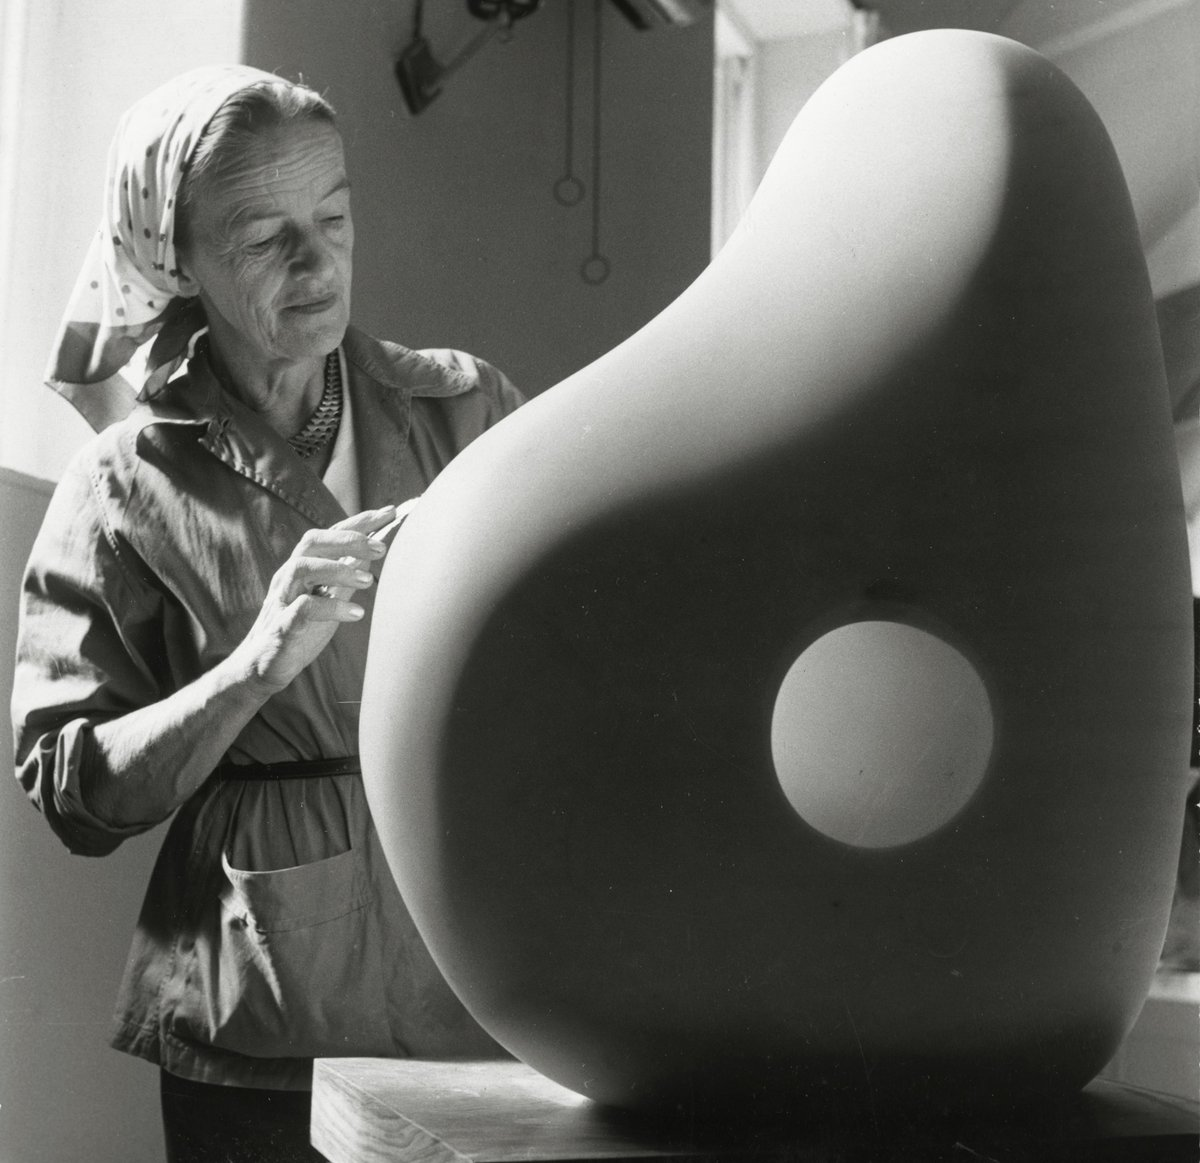 Our new #BarbaraHepworth exhibition opens today, focusing on the last decade of her life http://t.co/92fbgVJA1j http://t.co/BLXVaTrFZI